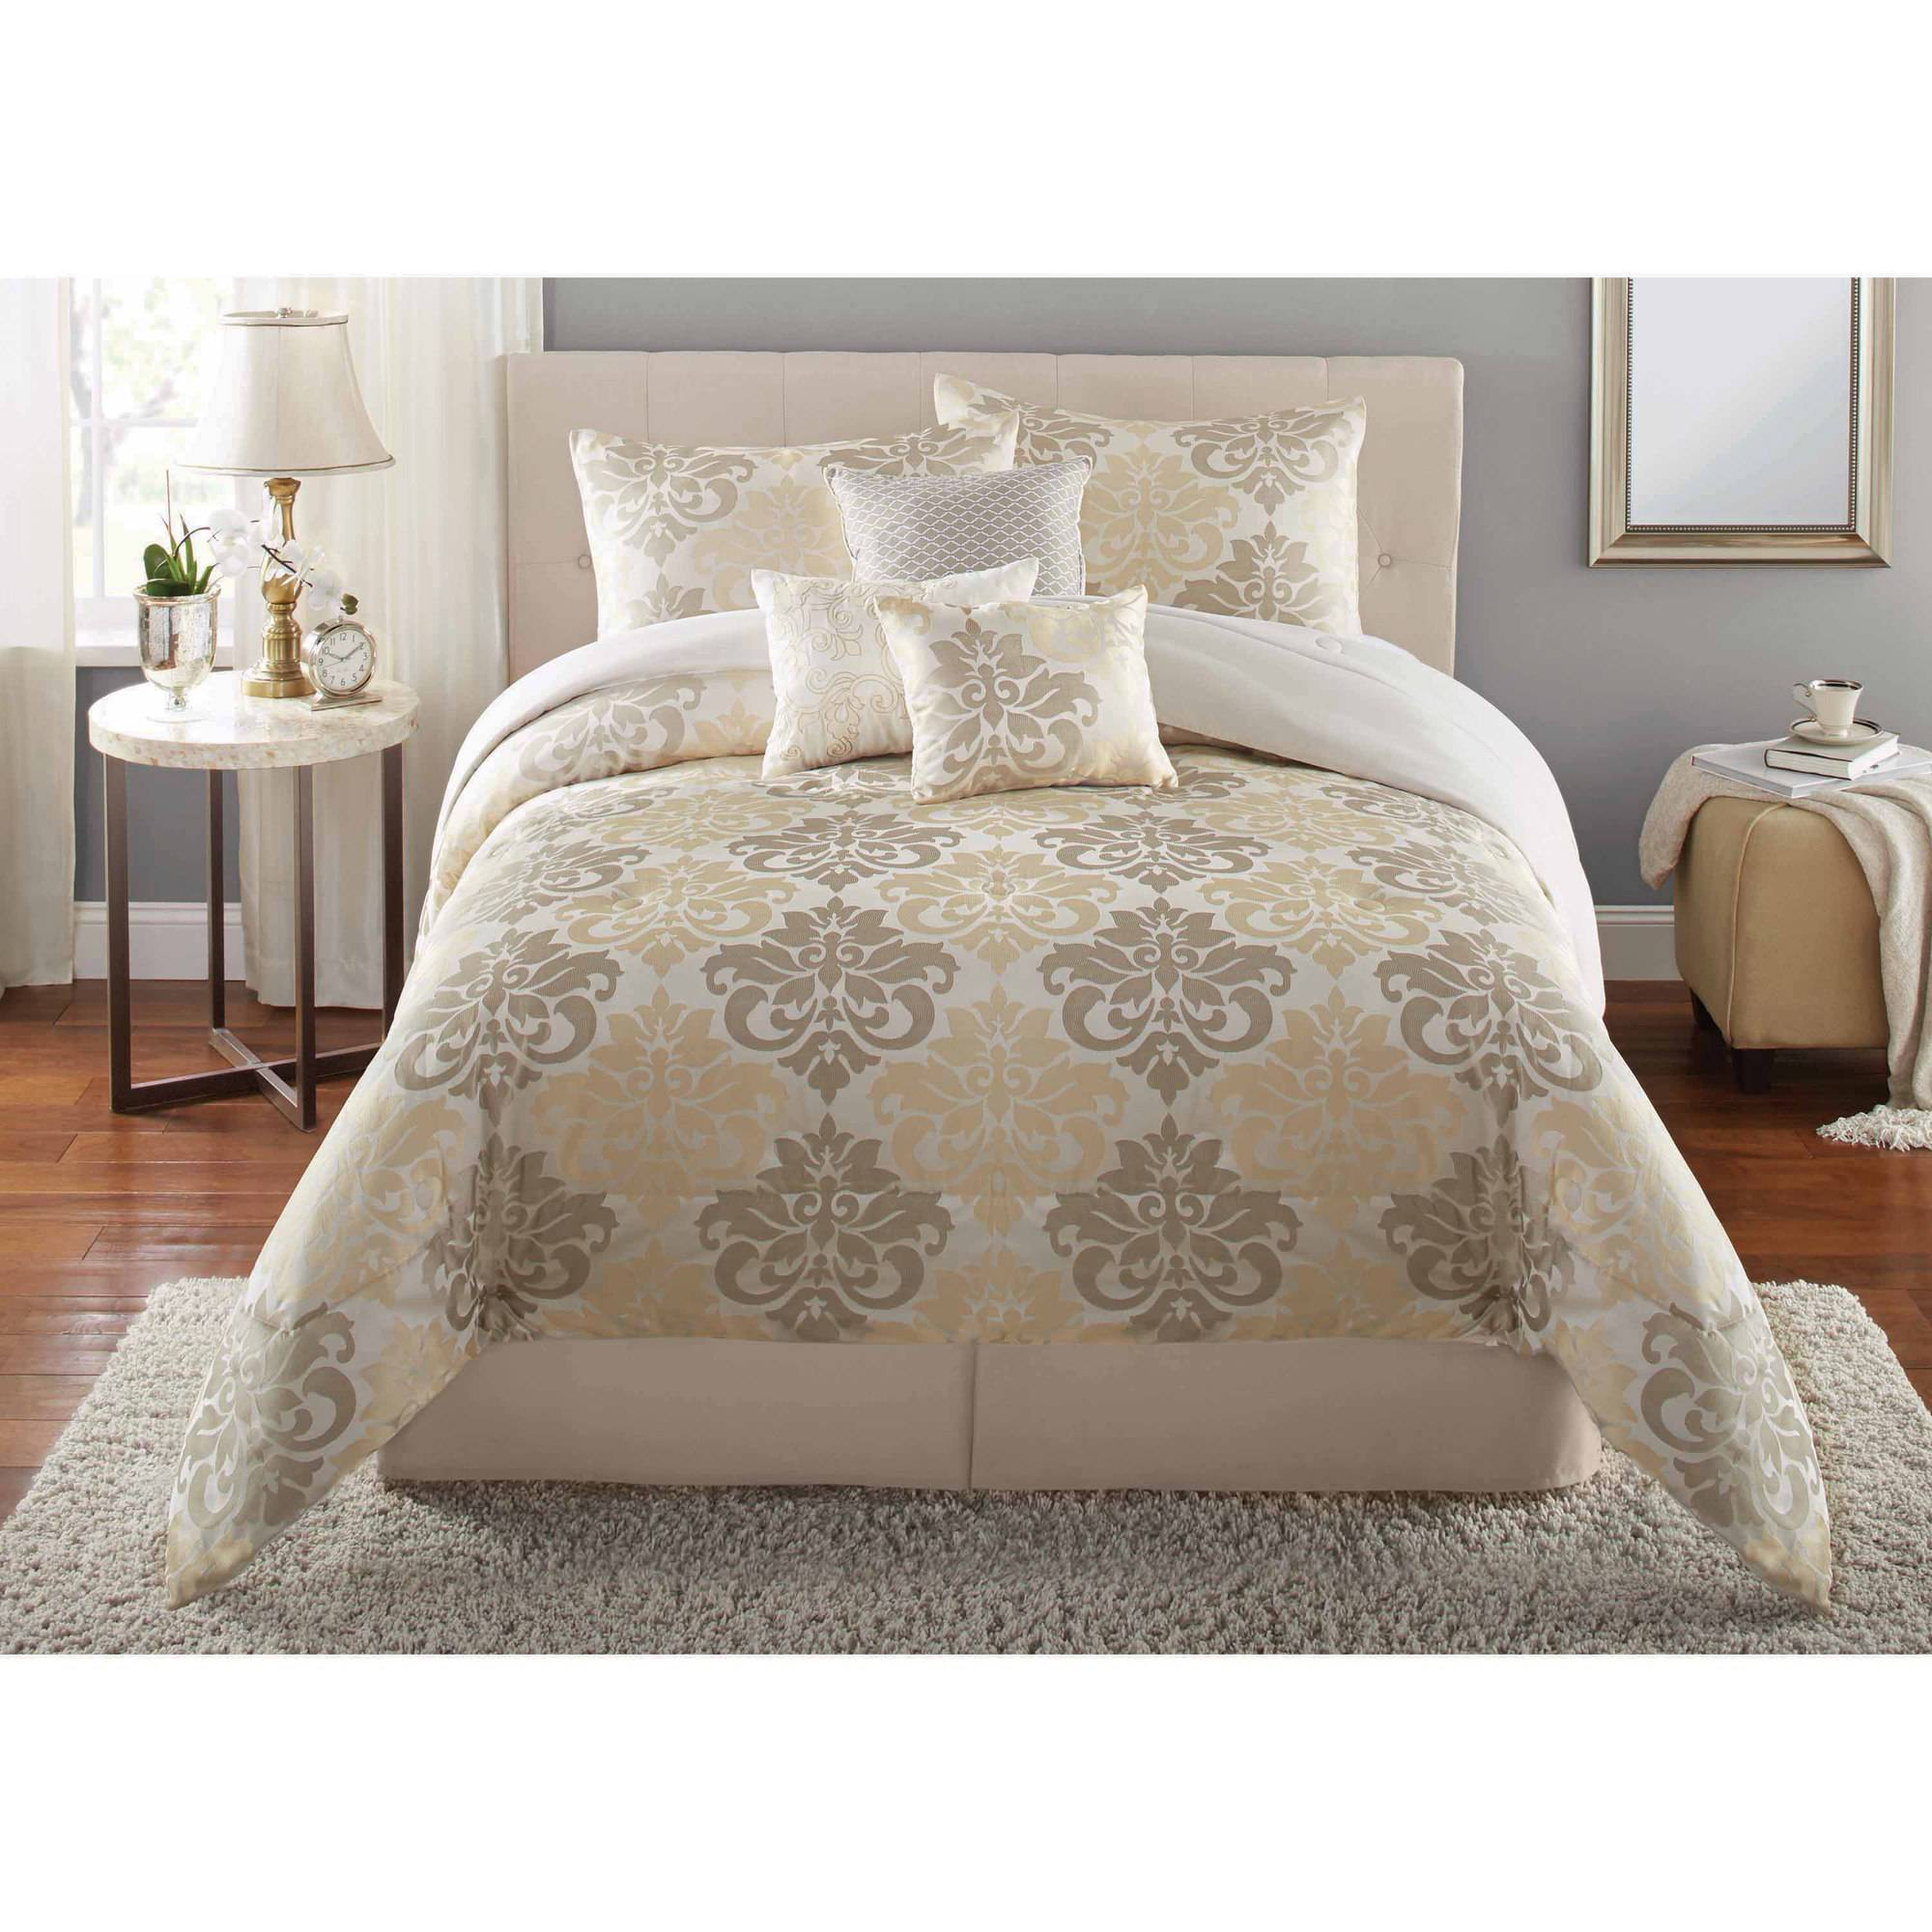 Mainstays 7 Piece Damask Bedding Comforter Set Walmart Com